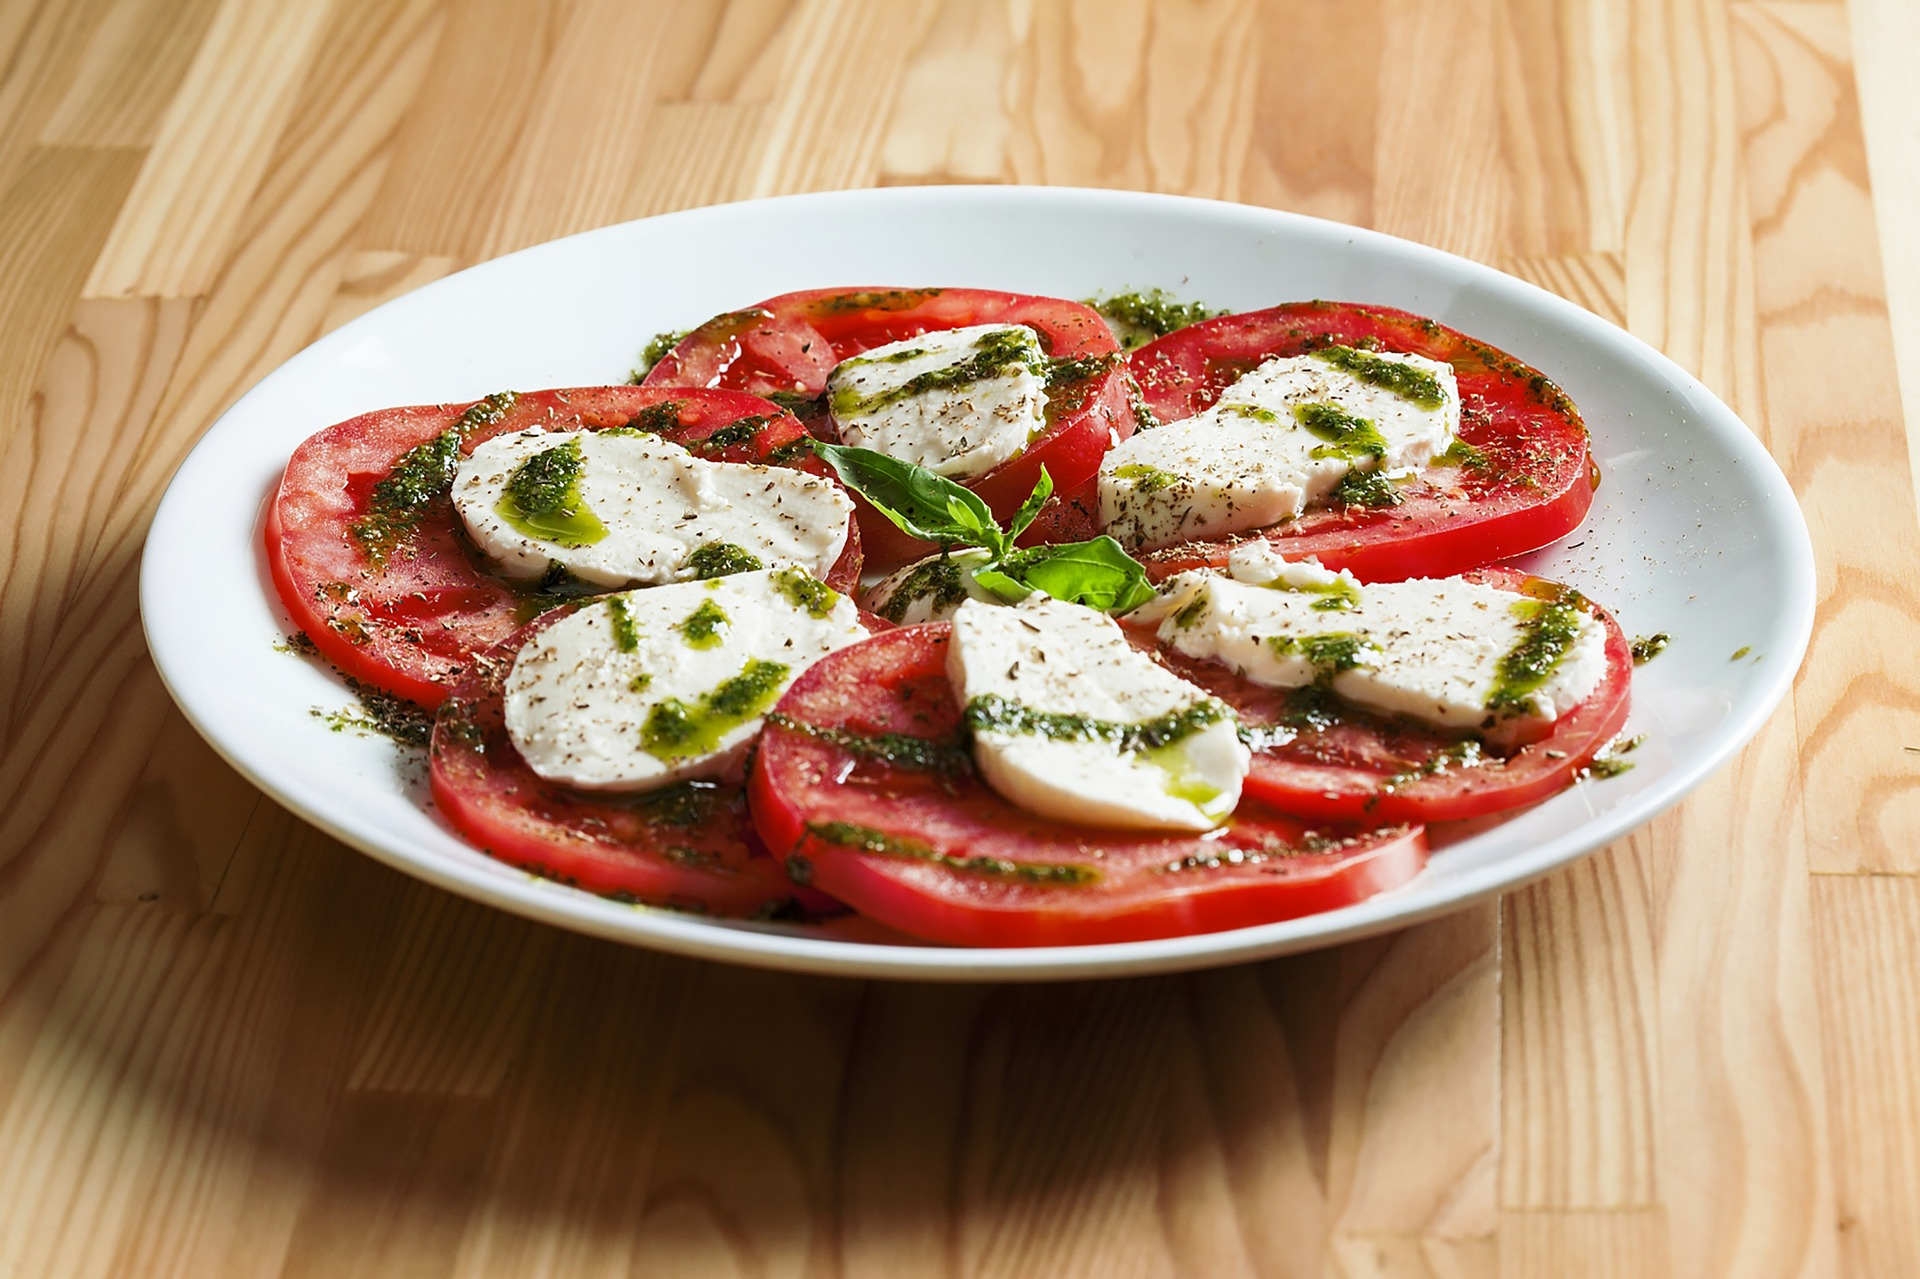 Tomato Mozzarella with Pesto